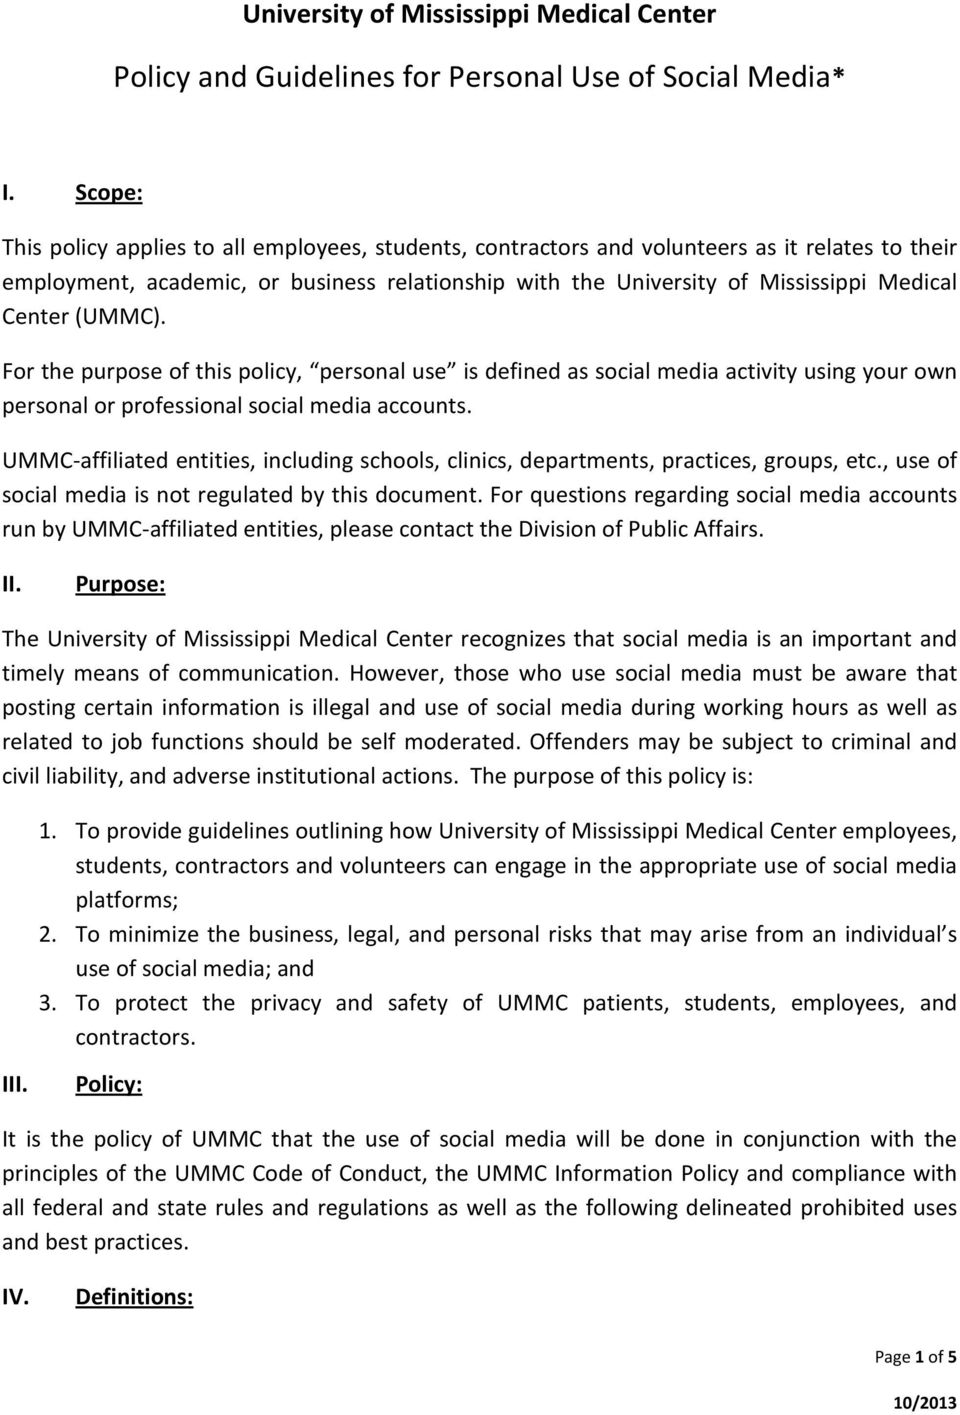 UMMC-affiliated entities, including schools, clinics, departments, practices, groups, etc., use of social media is not regulated by this document.